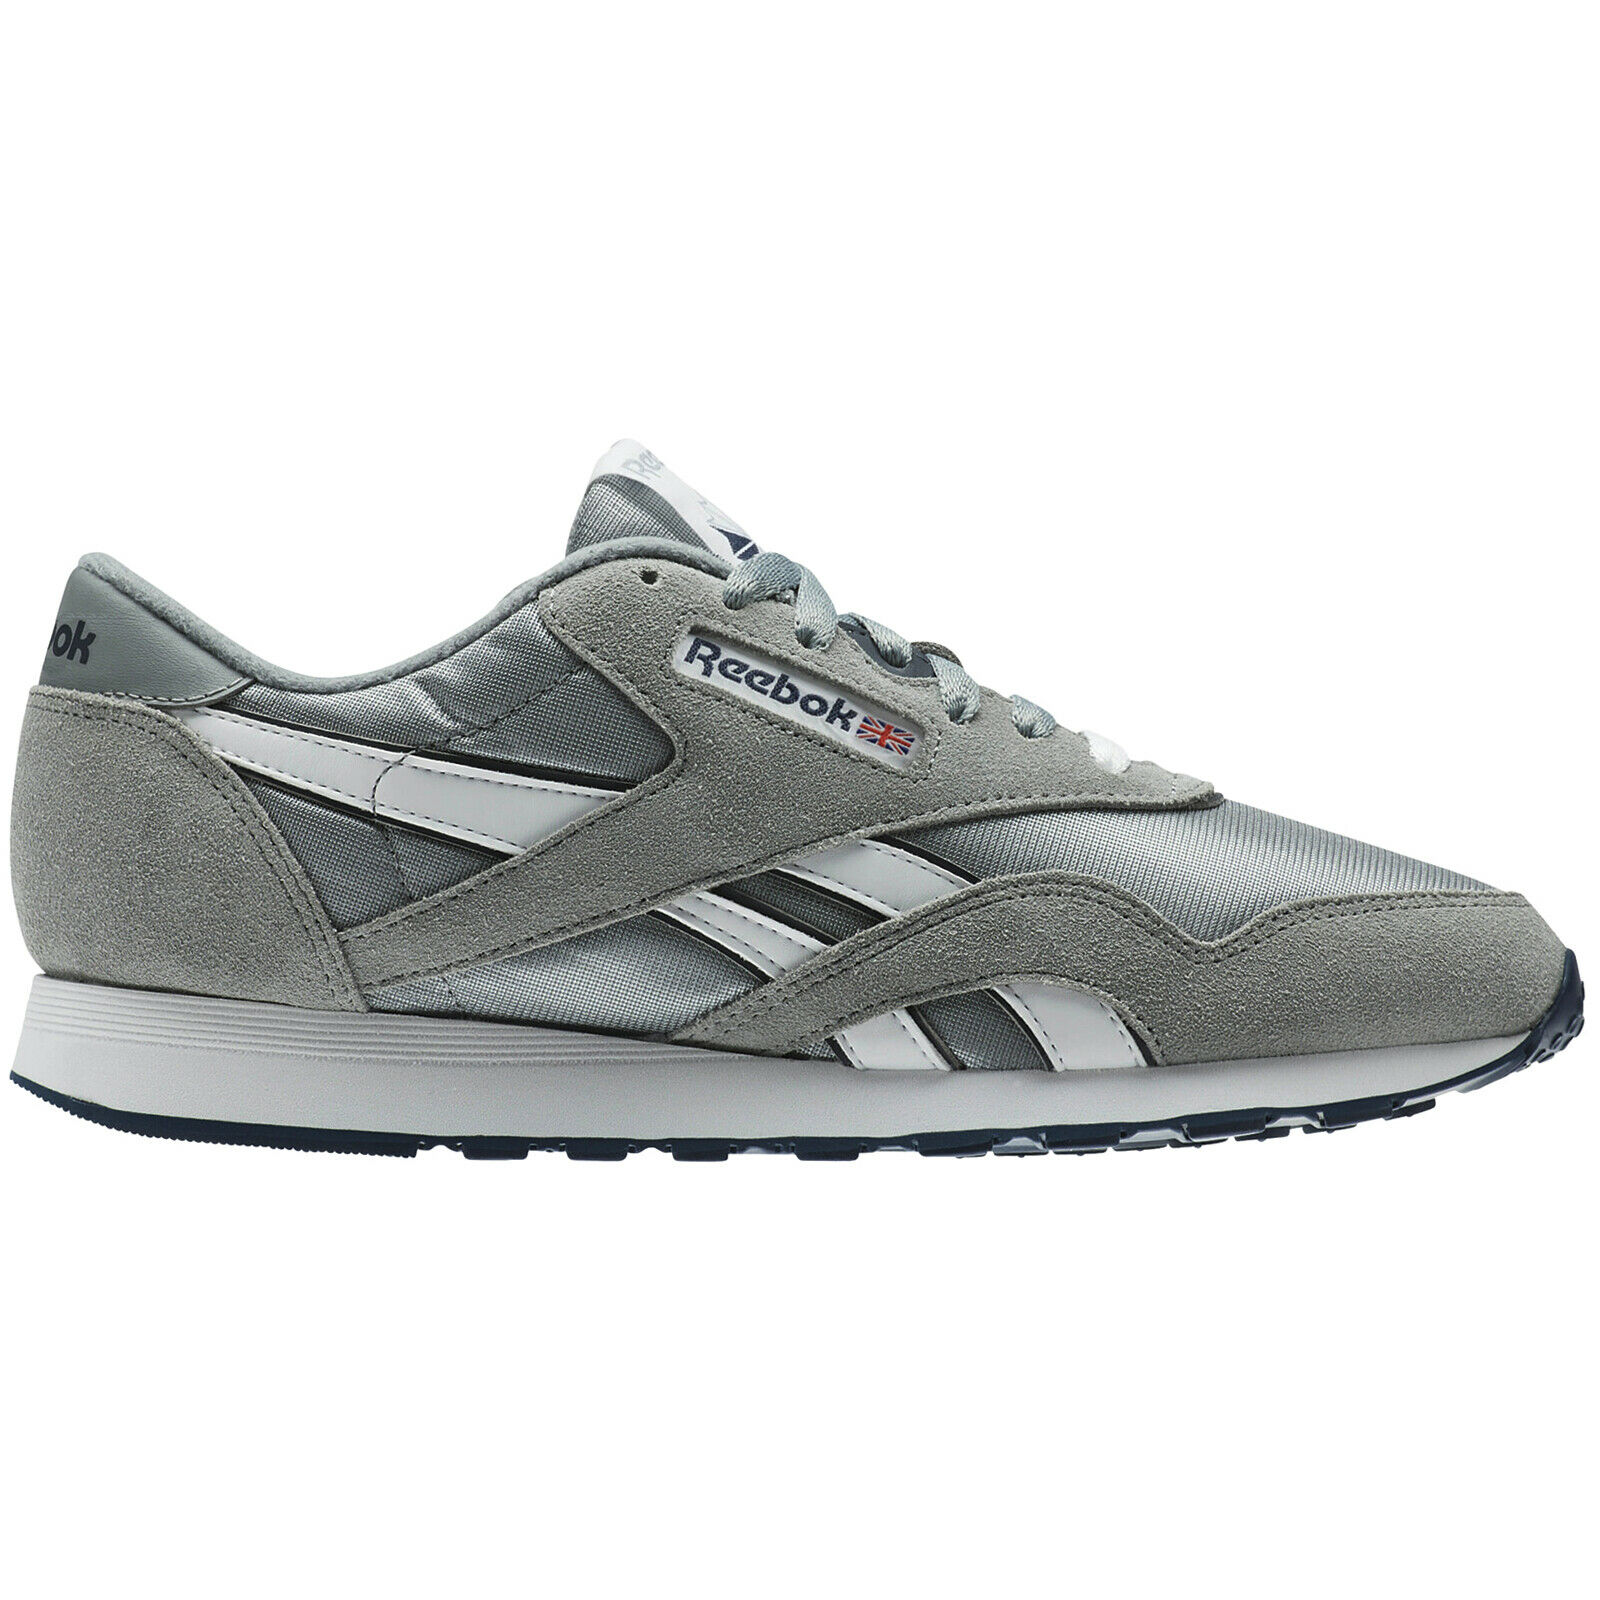 df3498c55ffc9 Reebok Suede Classic Flat Lace-Up Mens Trainers Textile Classic ...